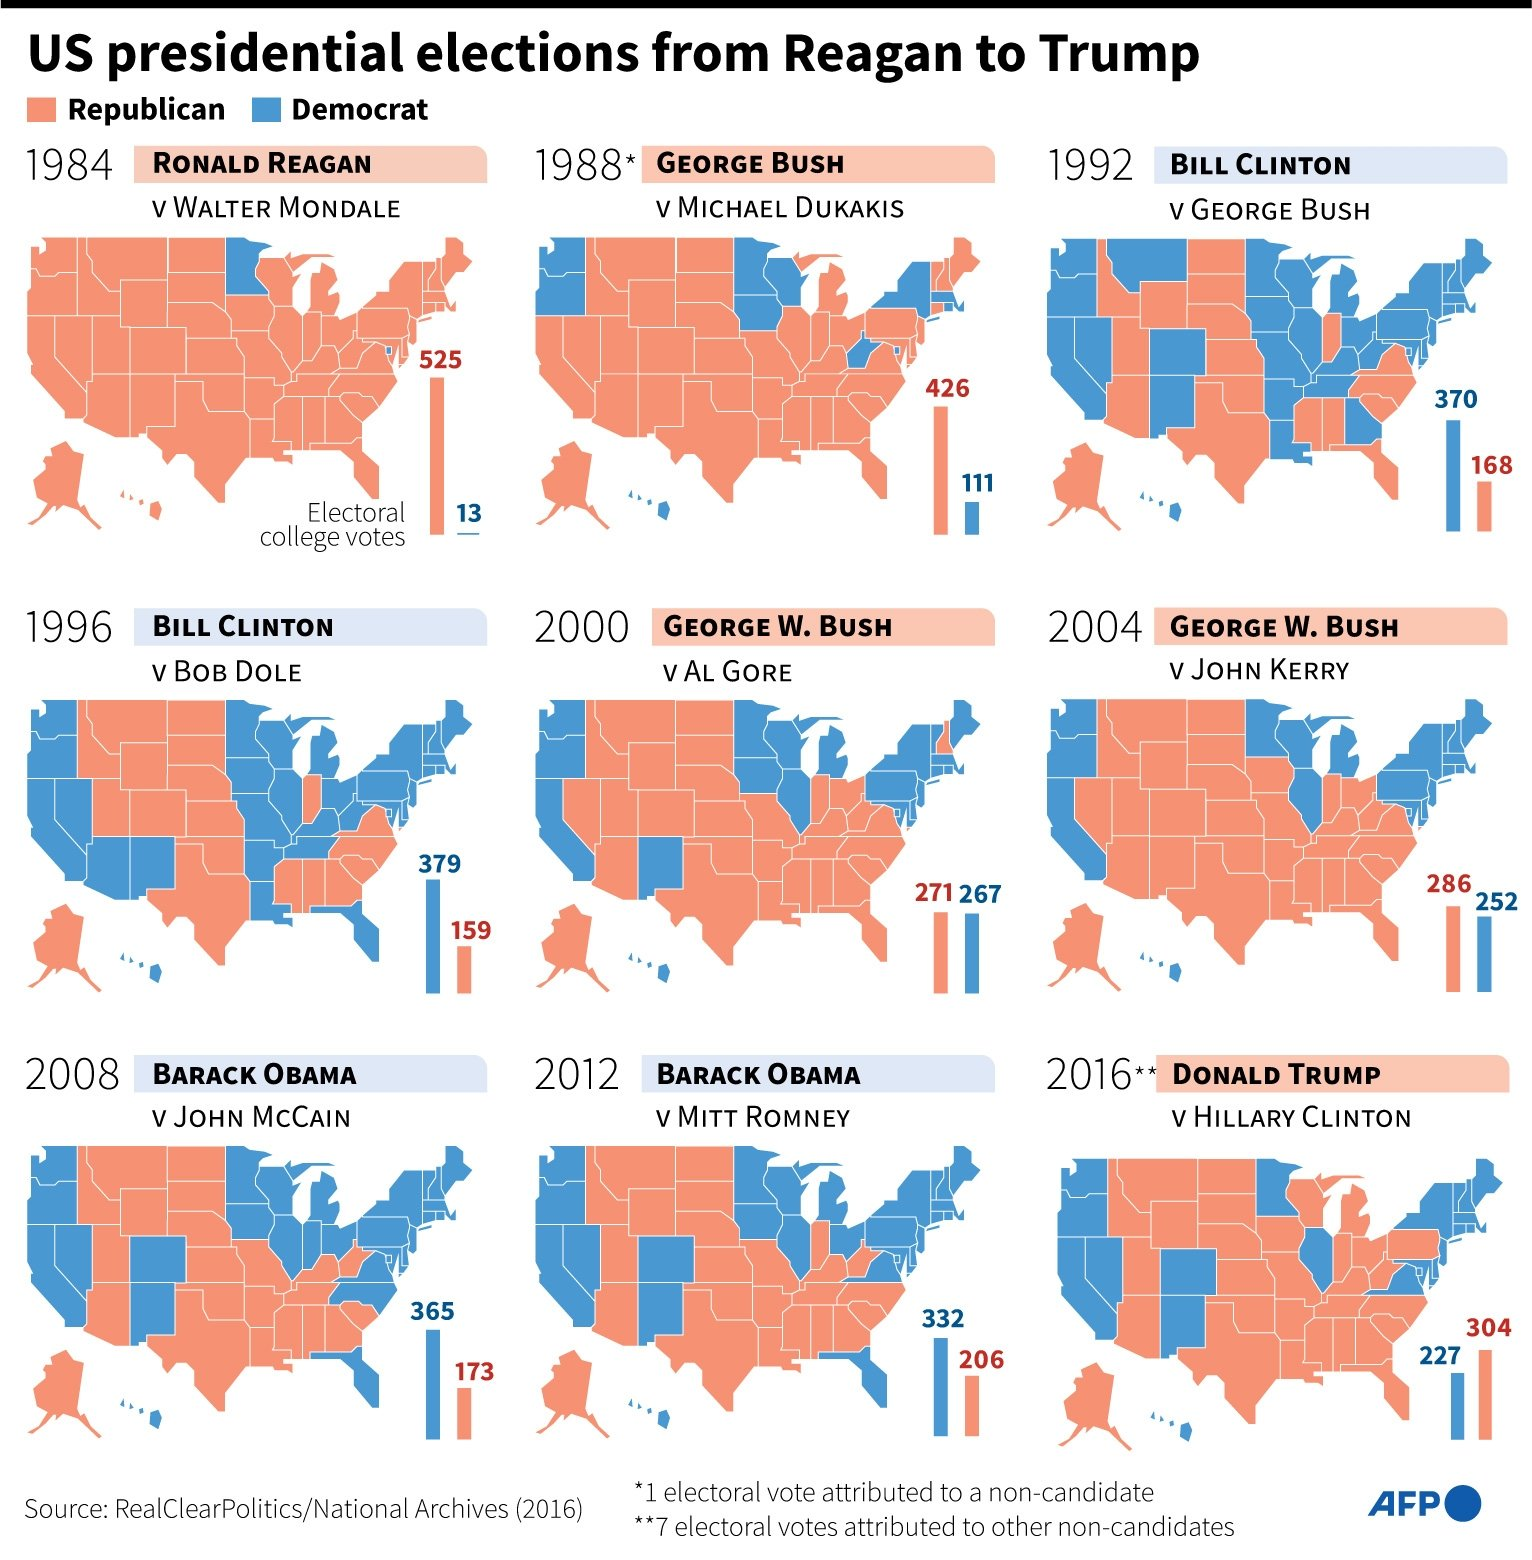 Results of US presidential elections (electoral college votes) from 1984 to 2016.  (AFP Photo)